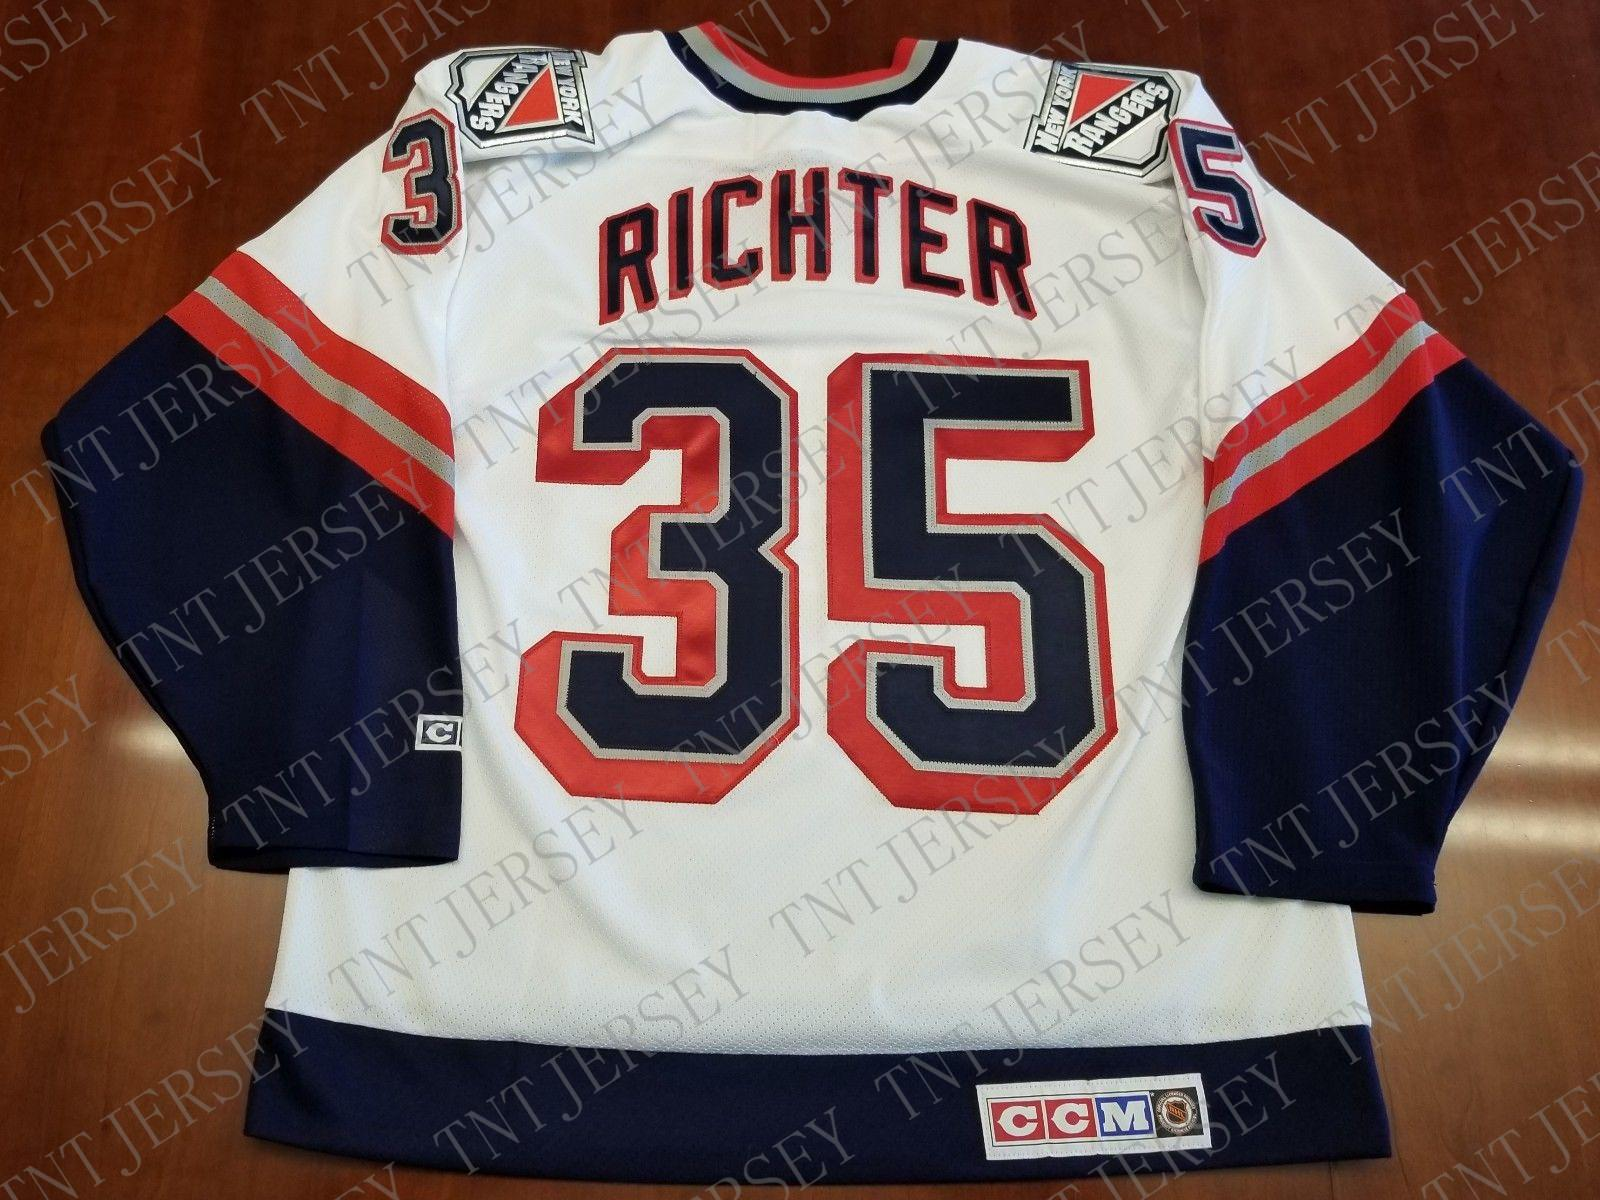 new style ee218 312ab Cheap custom Mike Richter Vintage New York Rangers CCM Jersey Lady Liberty  Stitched Retro Hockey Jersey XS-5XL